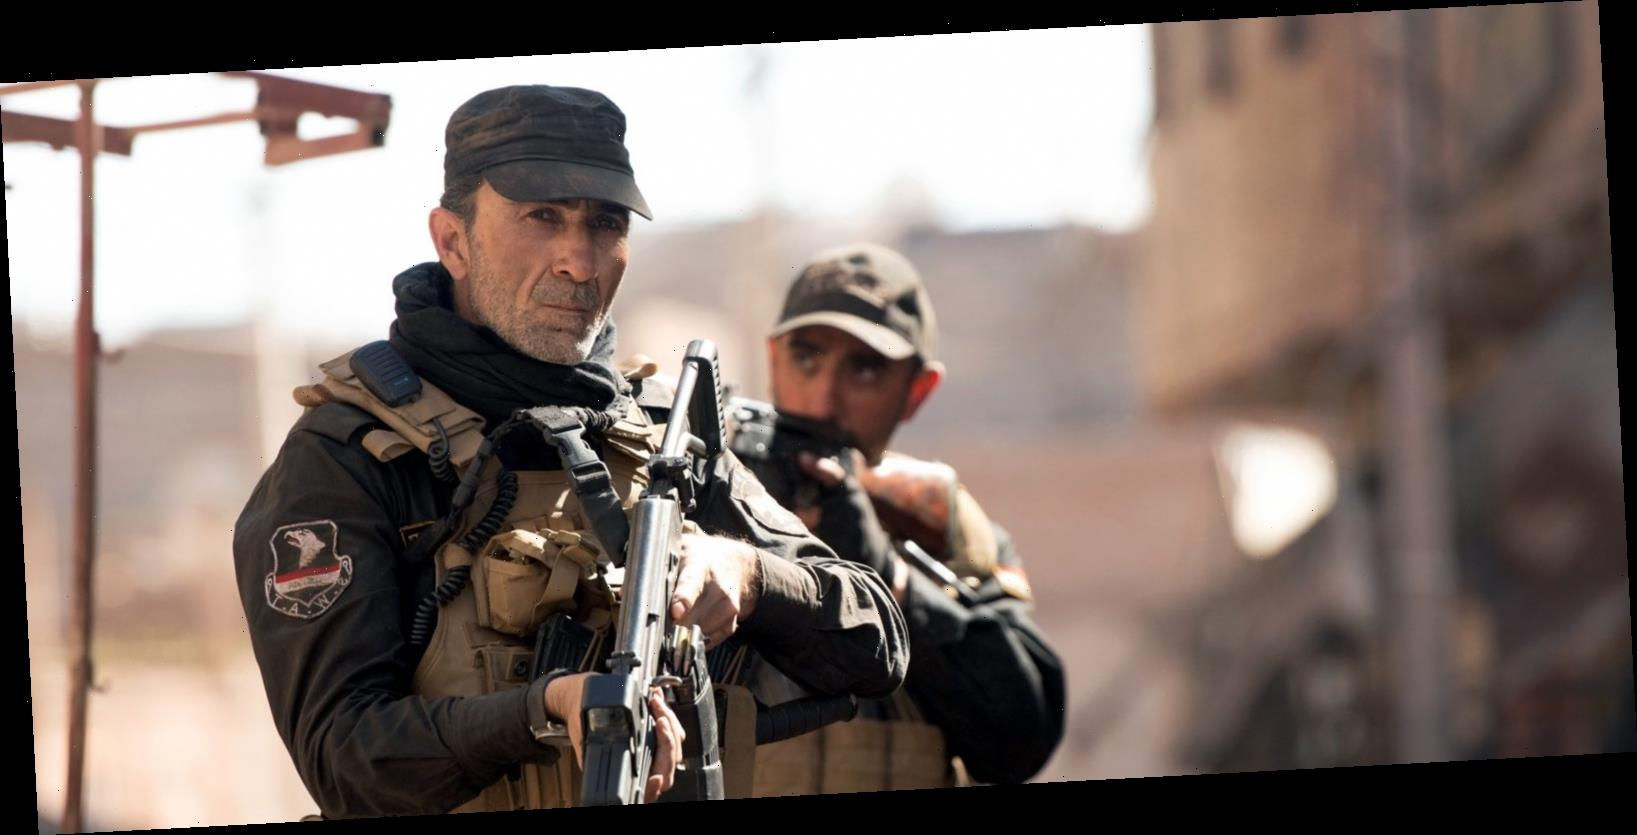 'Mosul' Trailer: Russo Brothers-Produced Netflix Thriller Follows Iraqi SWAT Team Fighting ISIS Militants